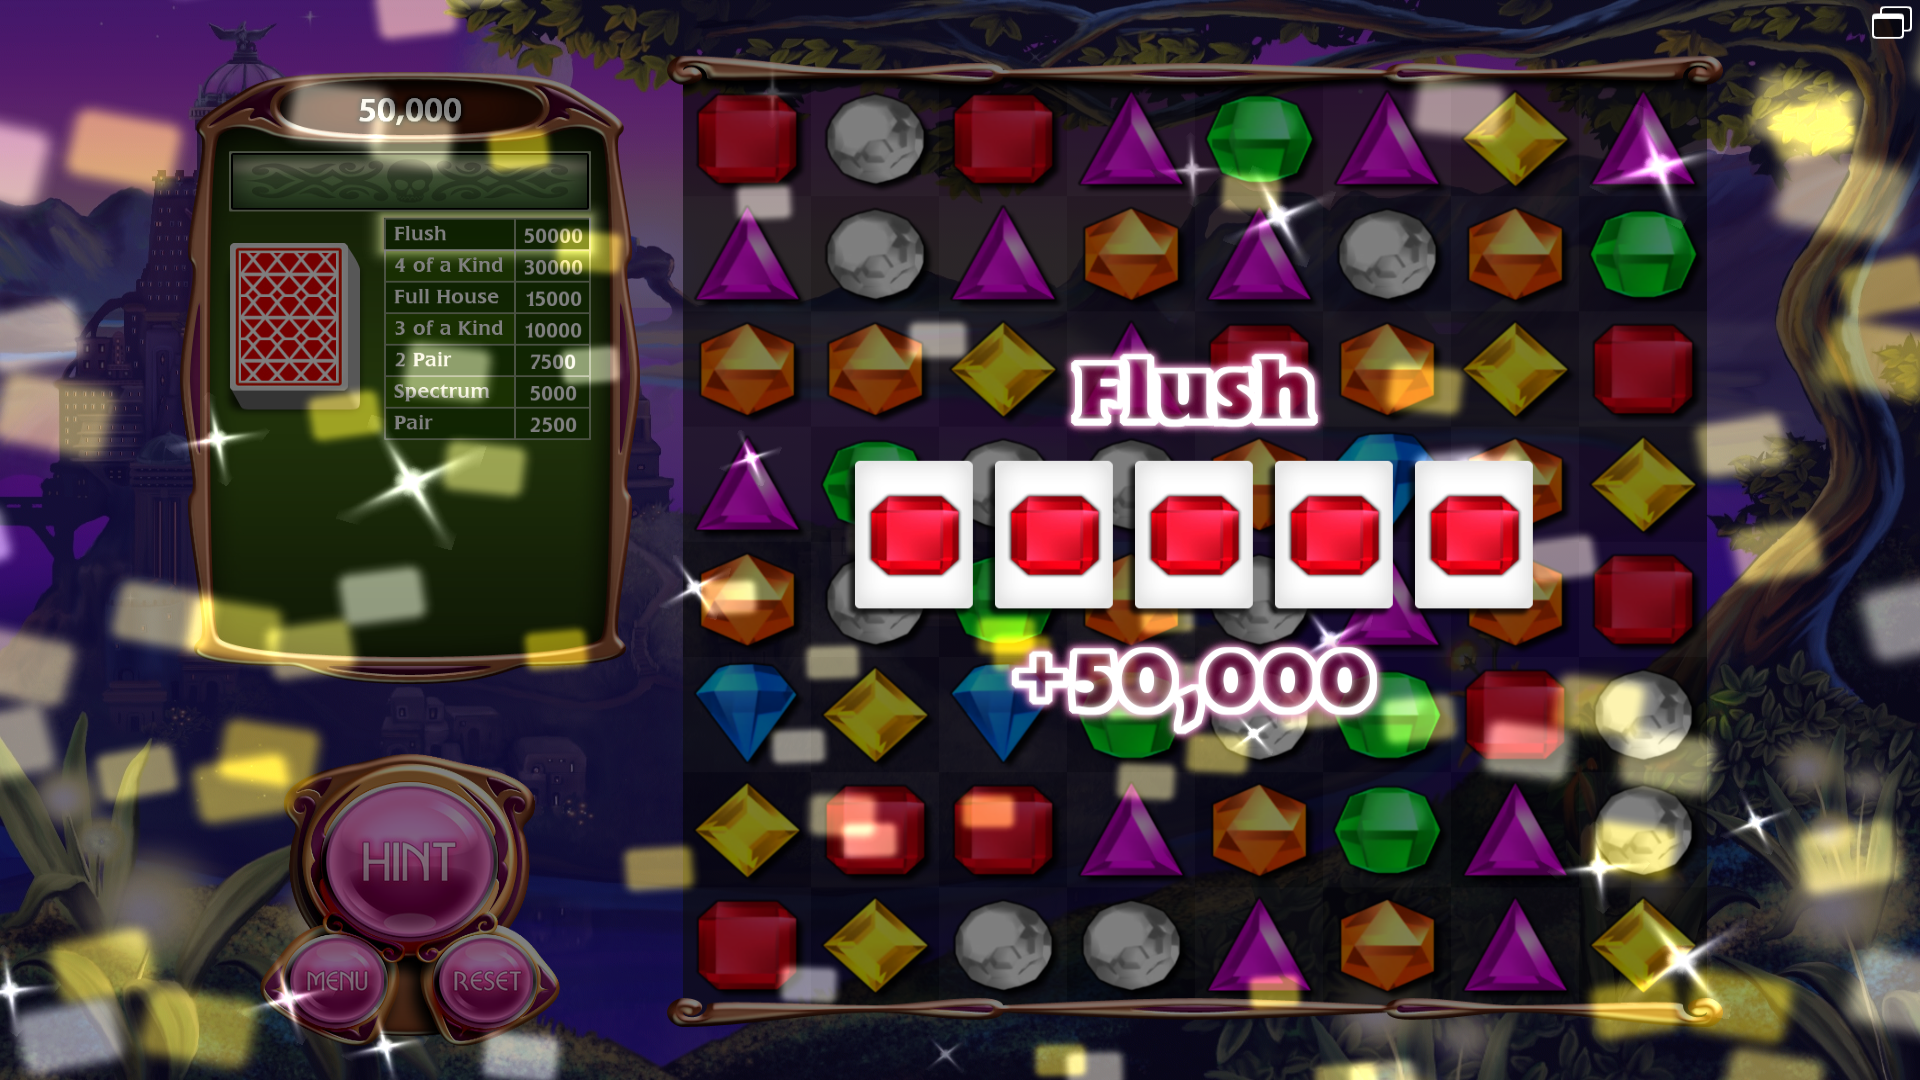 Bejeweled 3 poker download bold poker player crossword